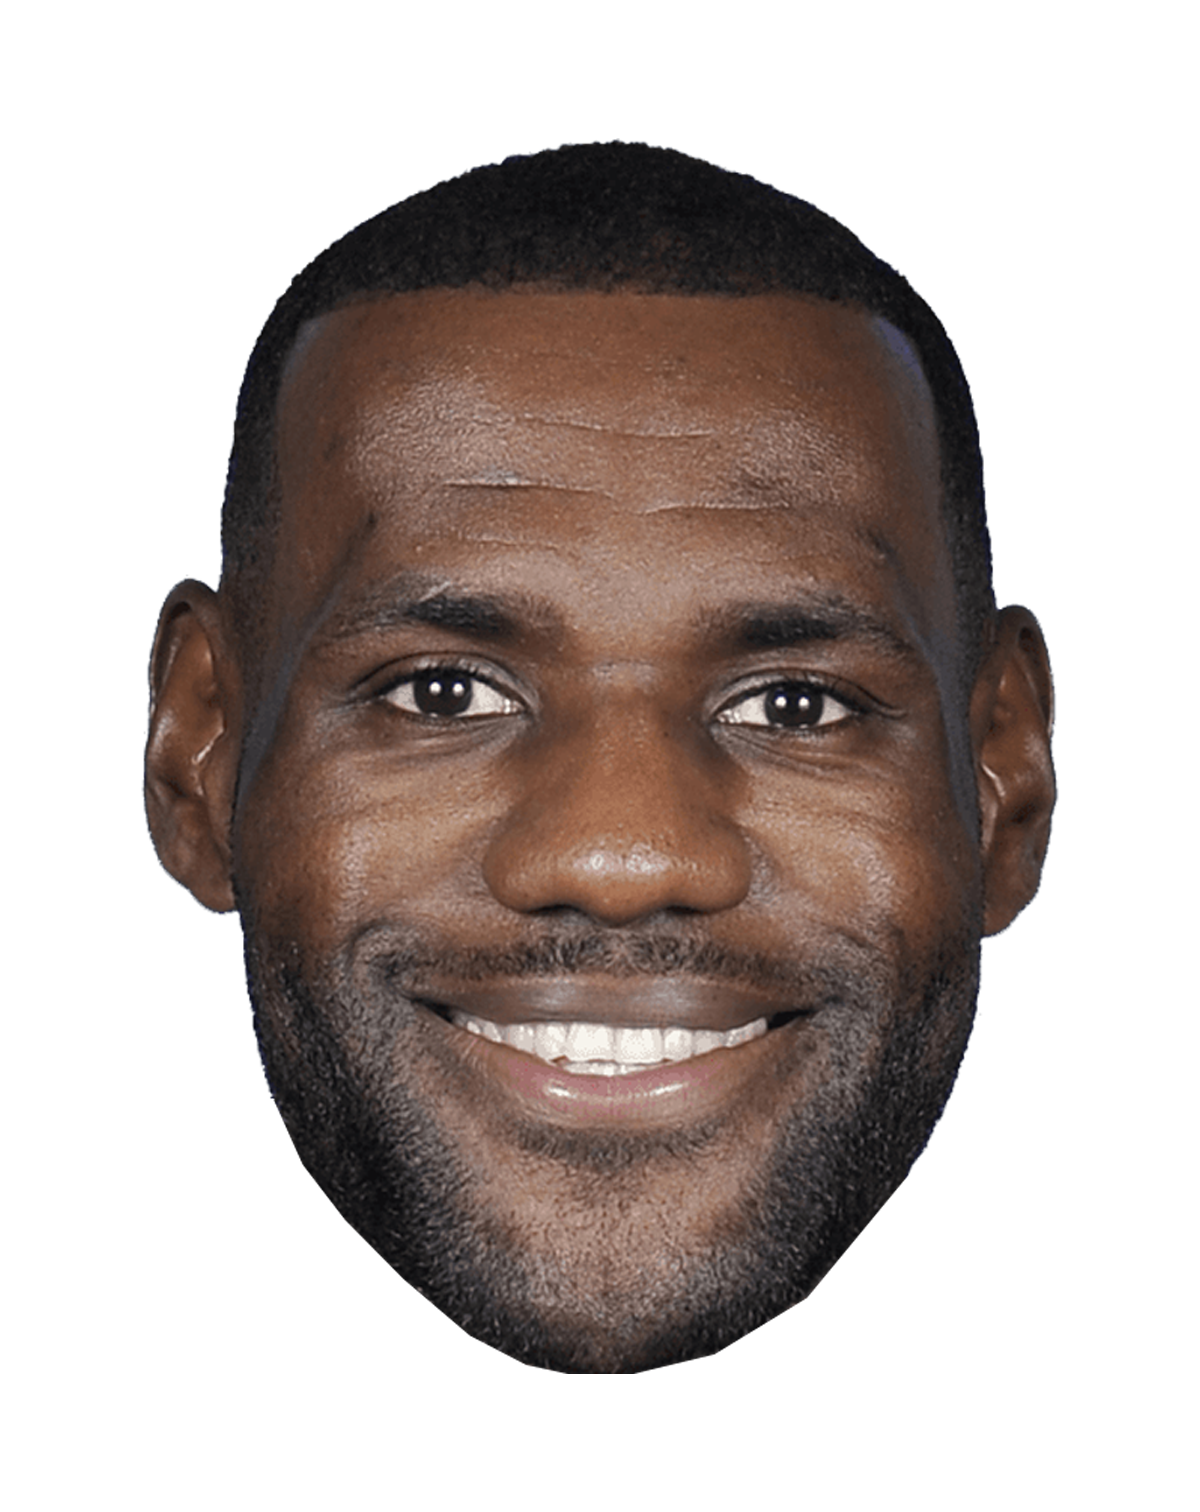 Lebron james head png. Cleveland cavaliers the nba